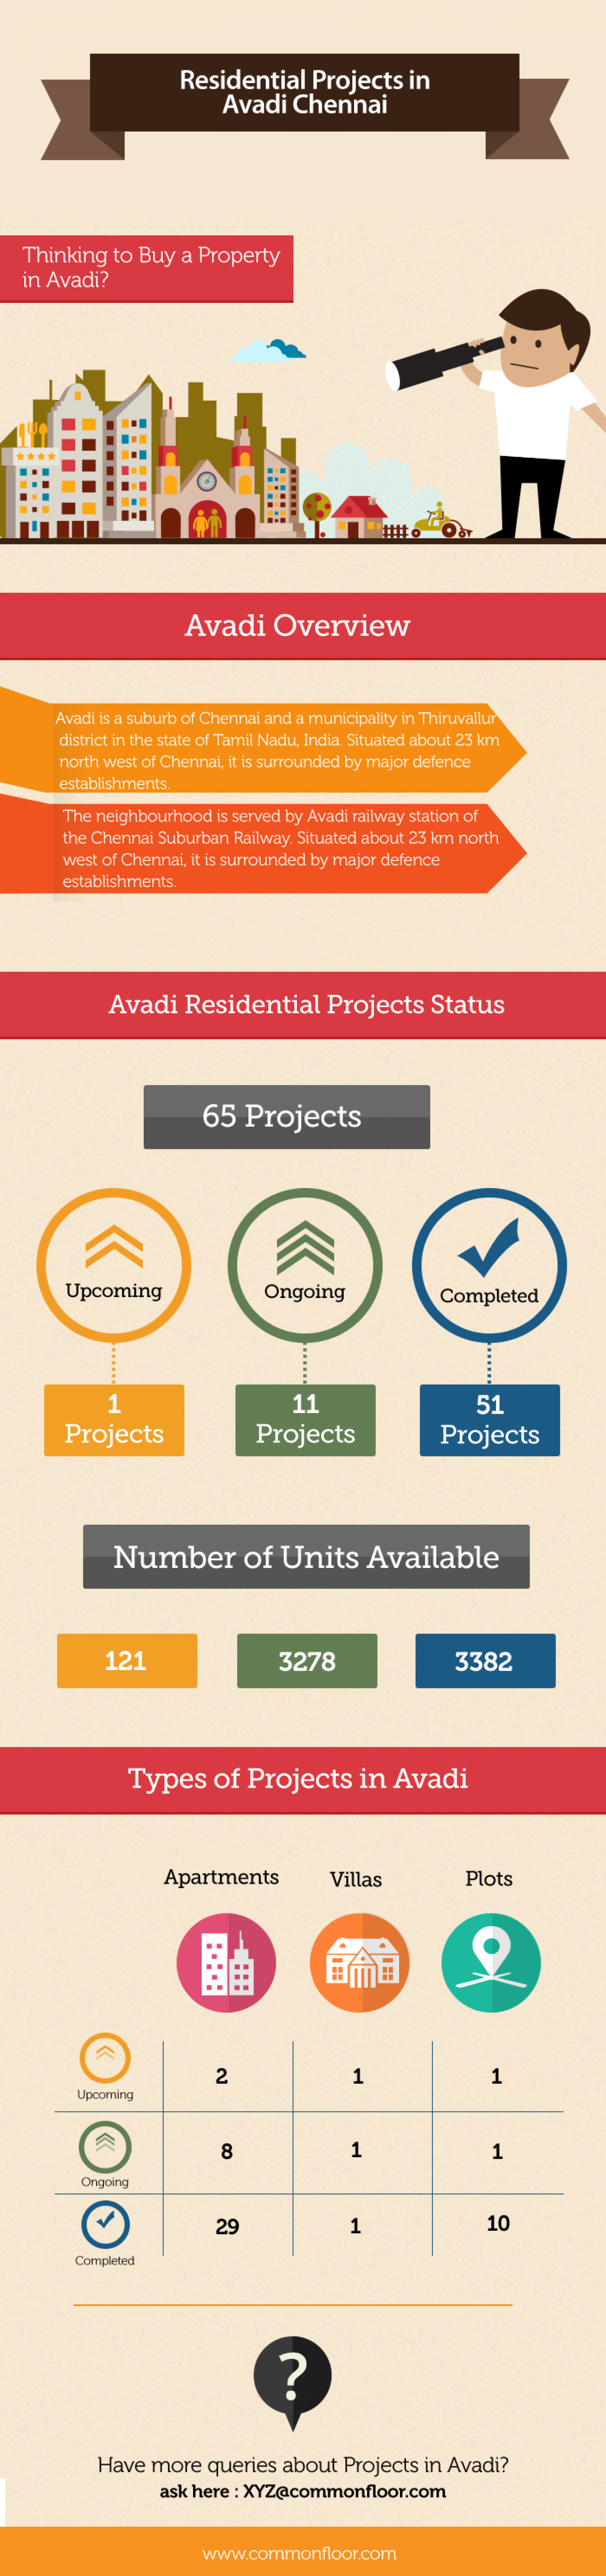 Residential projects in Avadi, Chennai Infographic